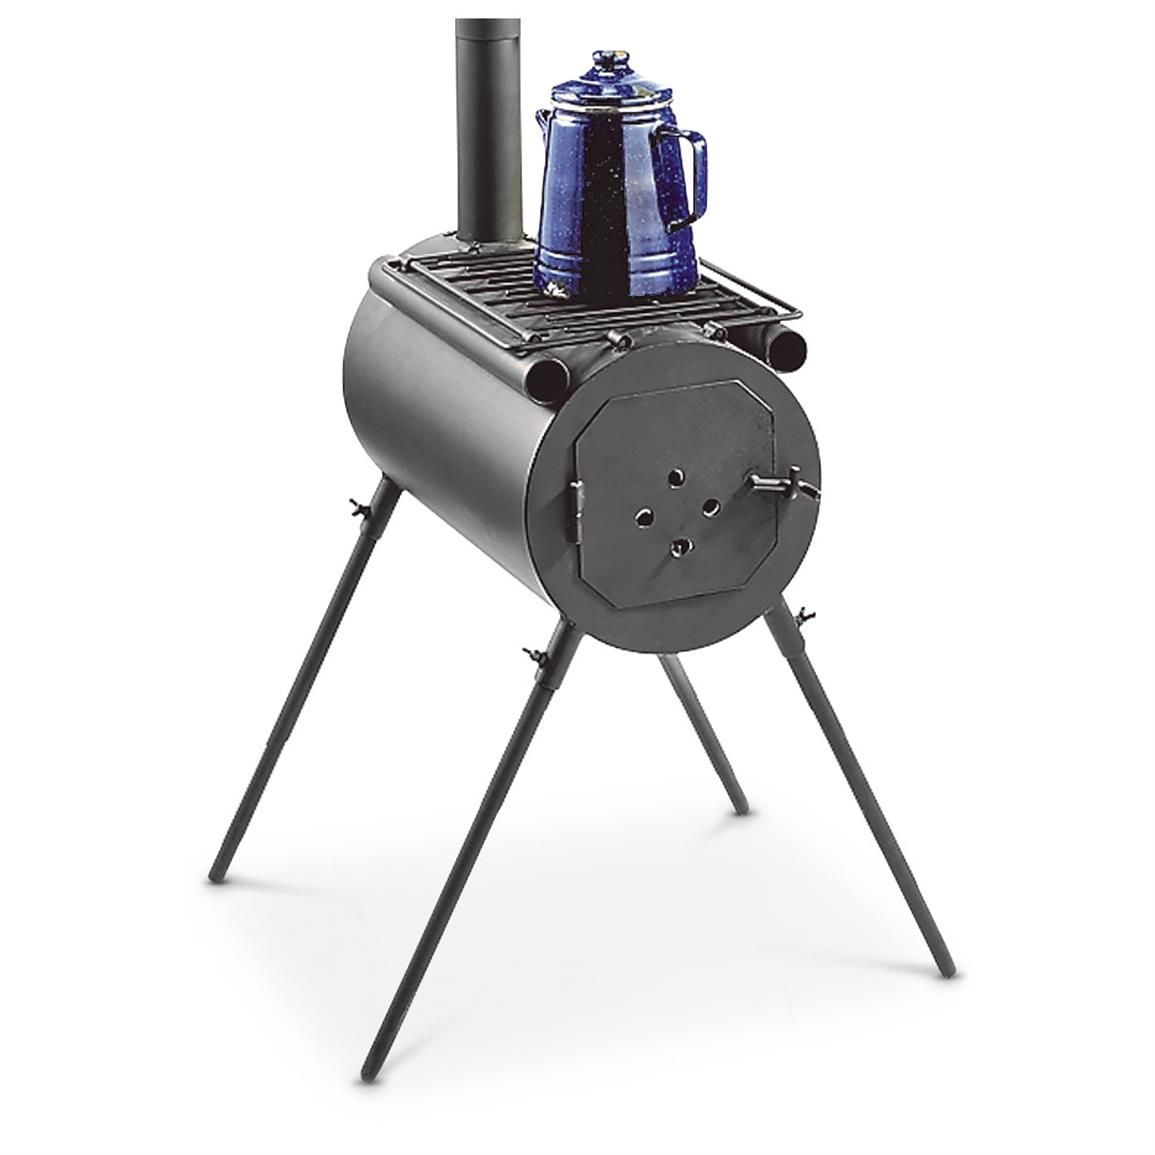 HQ ISSUE Camp Stove | Stove